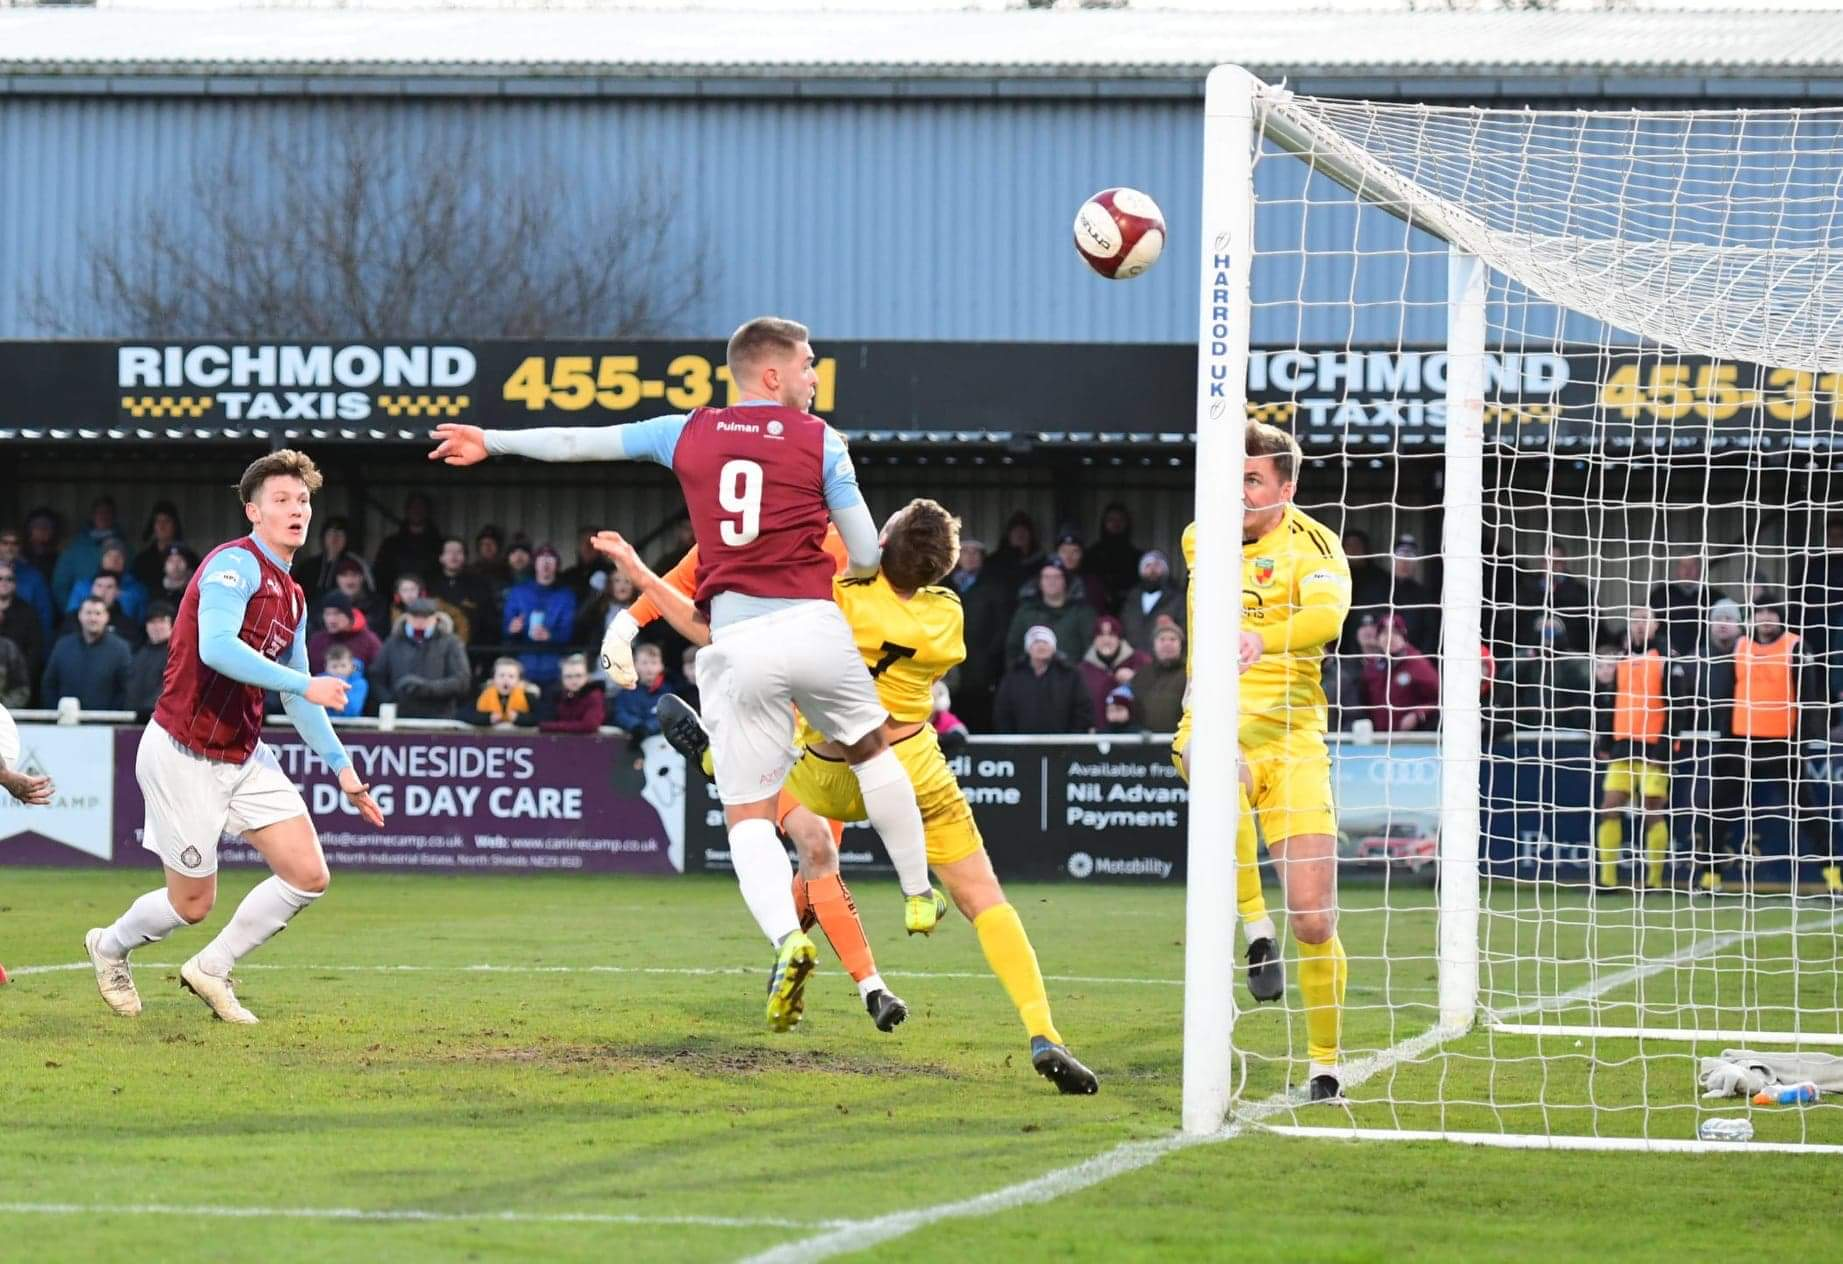 South Shields 1-4 Nantwich Town: Disappointing afternoon for Mariners